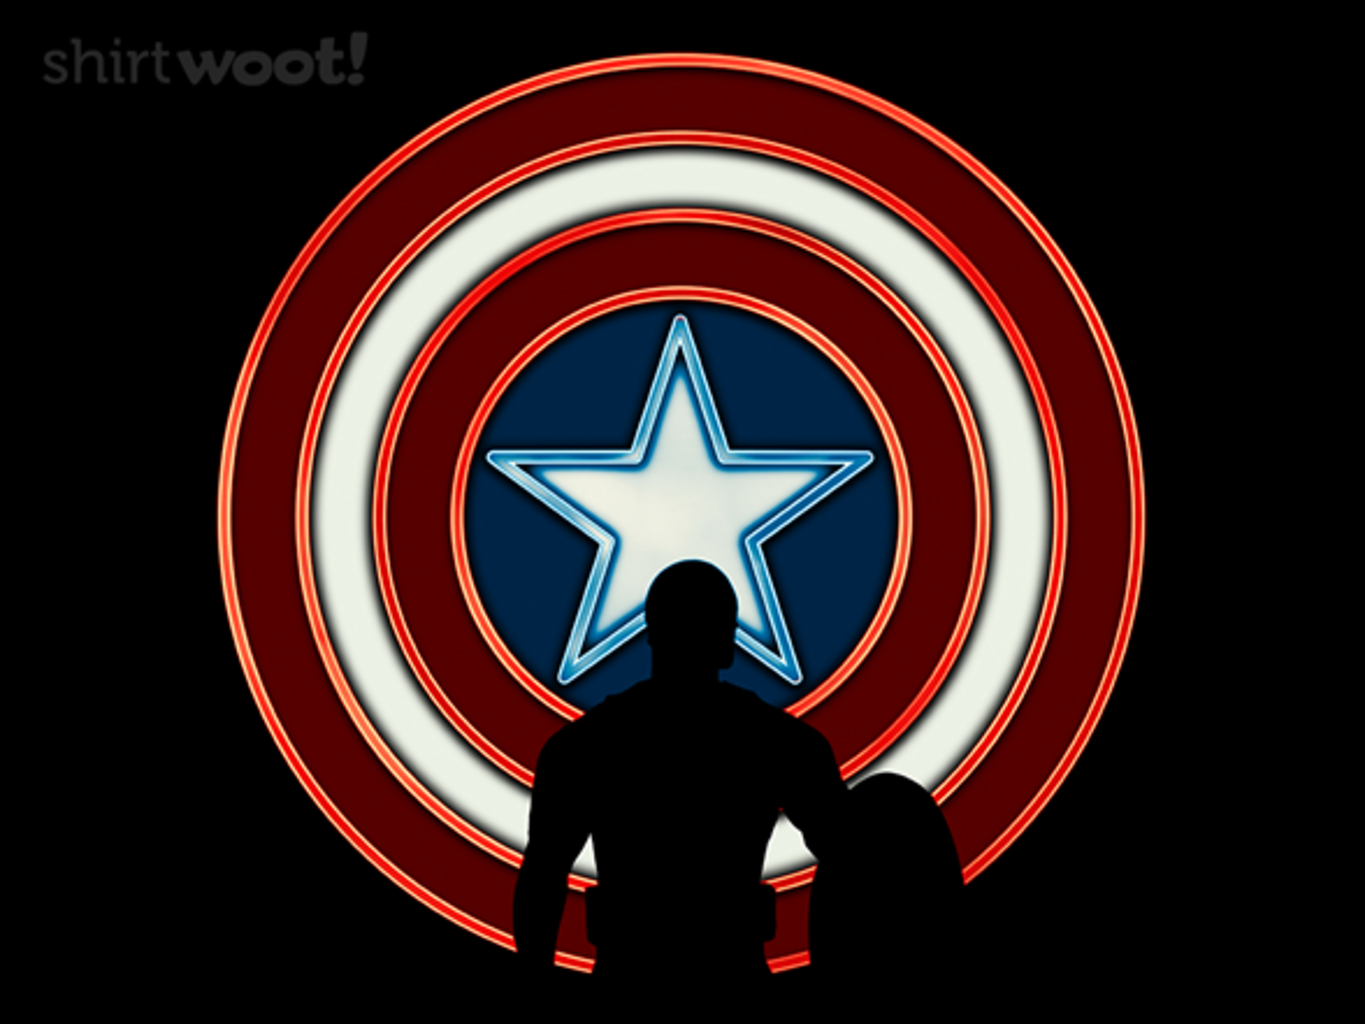 Woot!: The Cap'